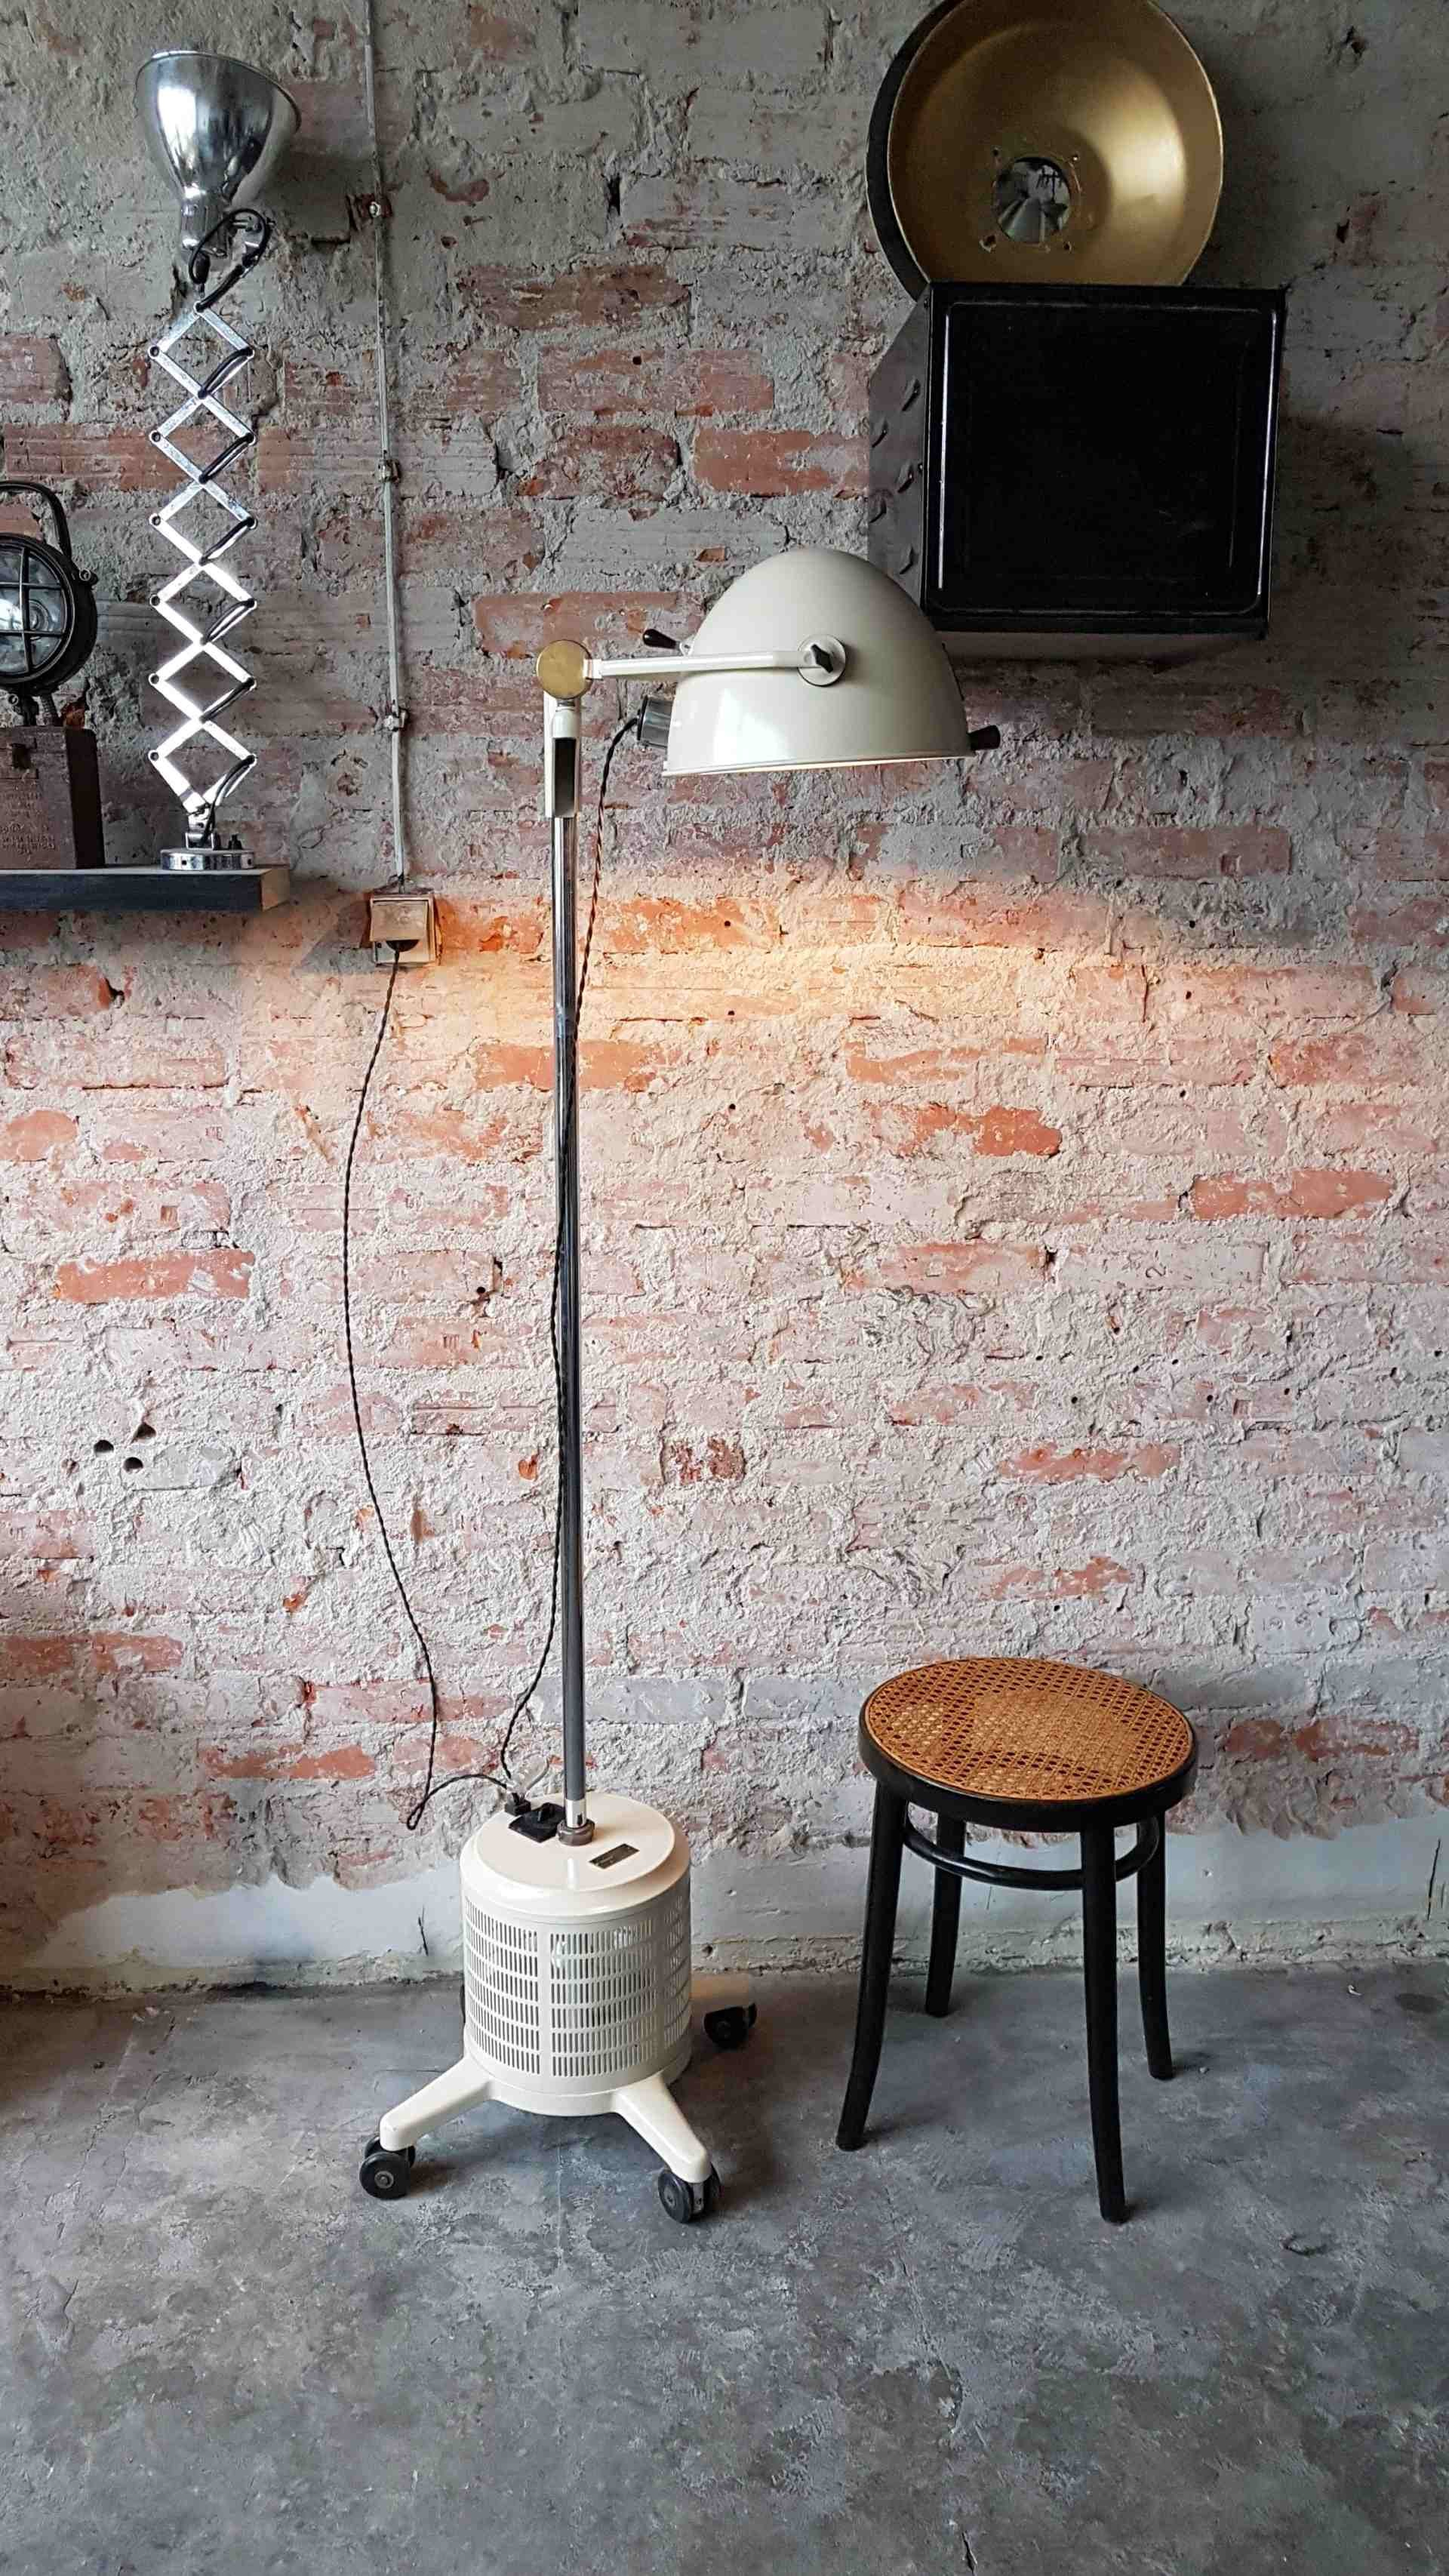 Floor Lamp model SR 300 by Original